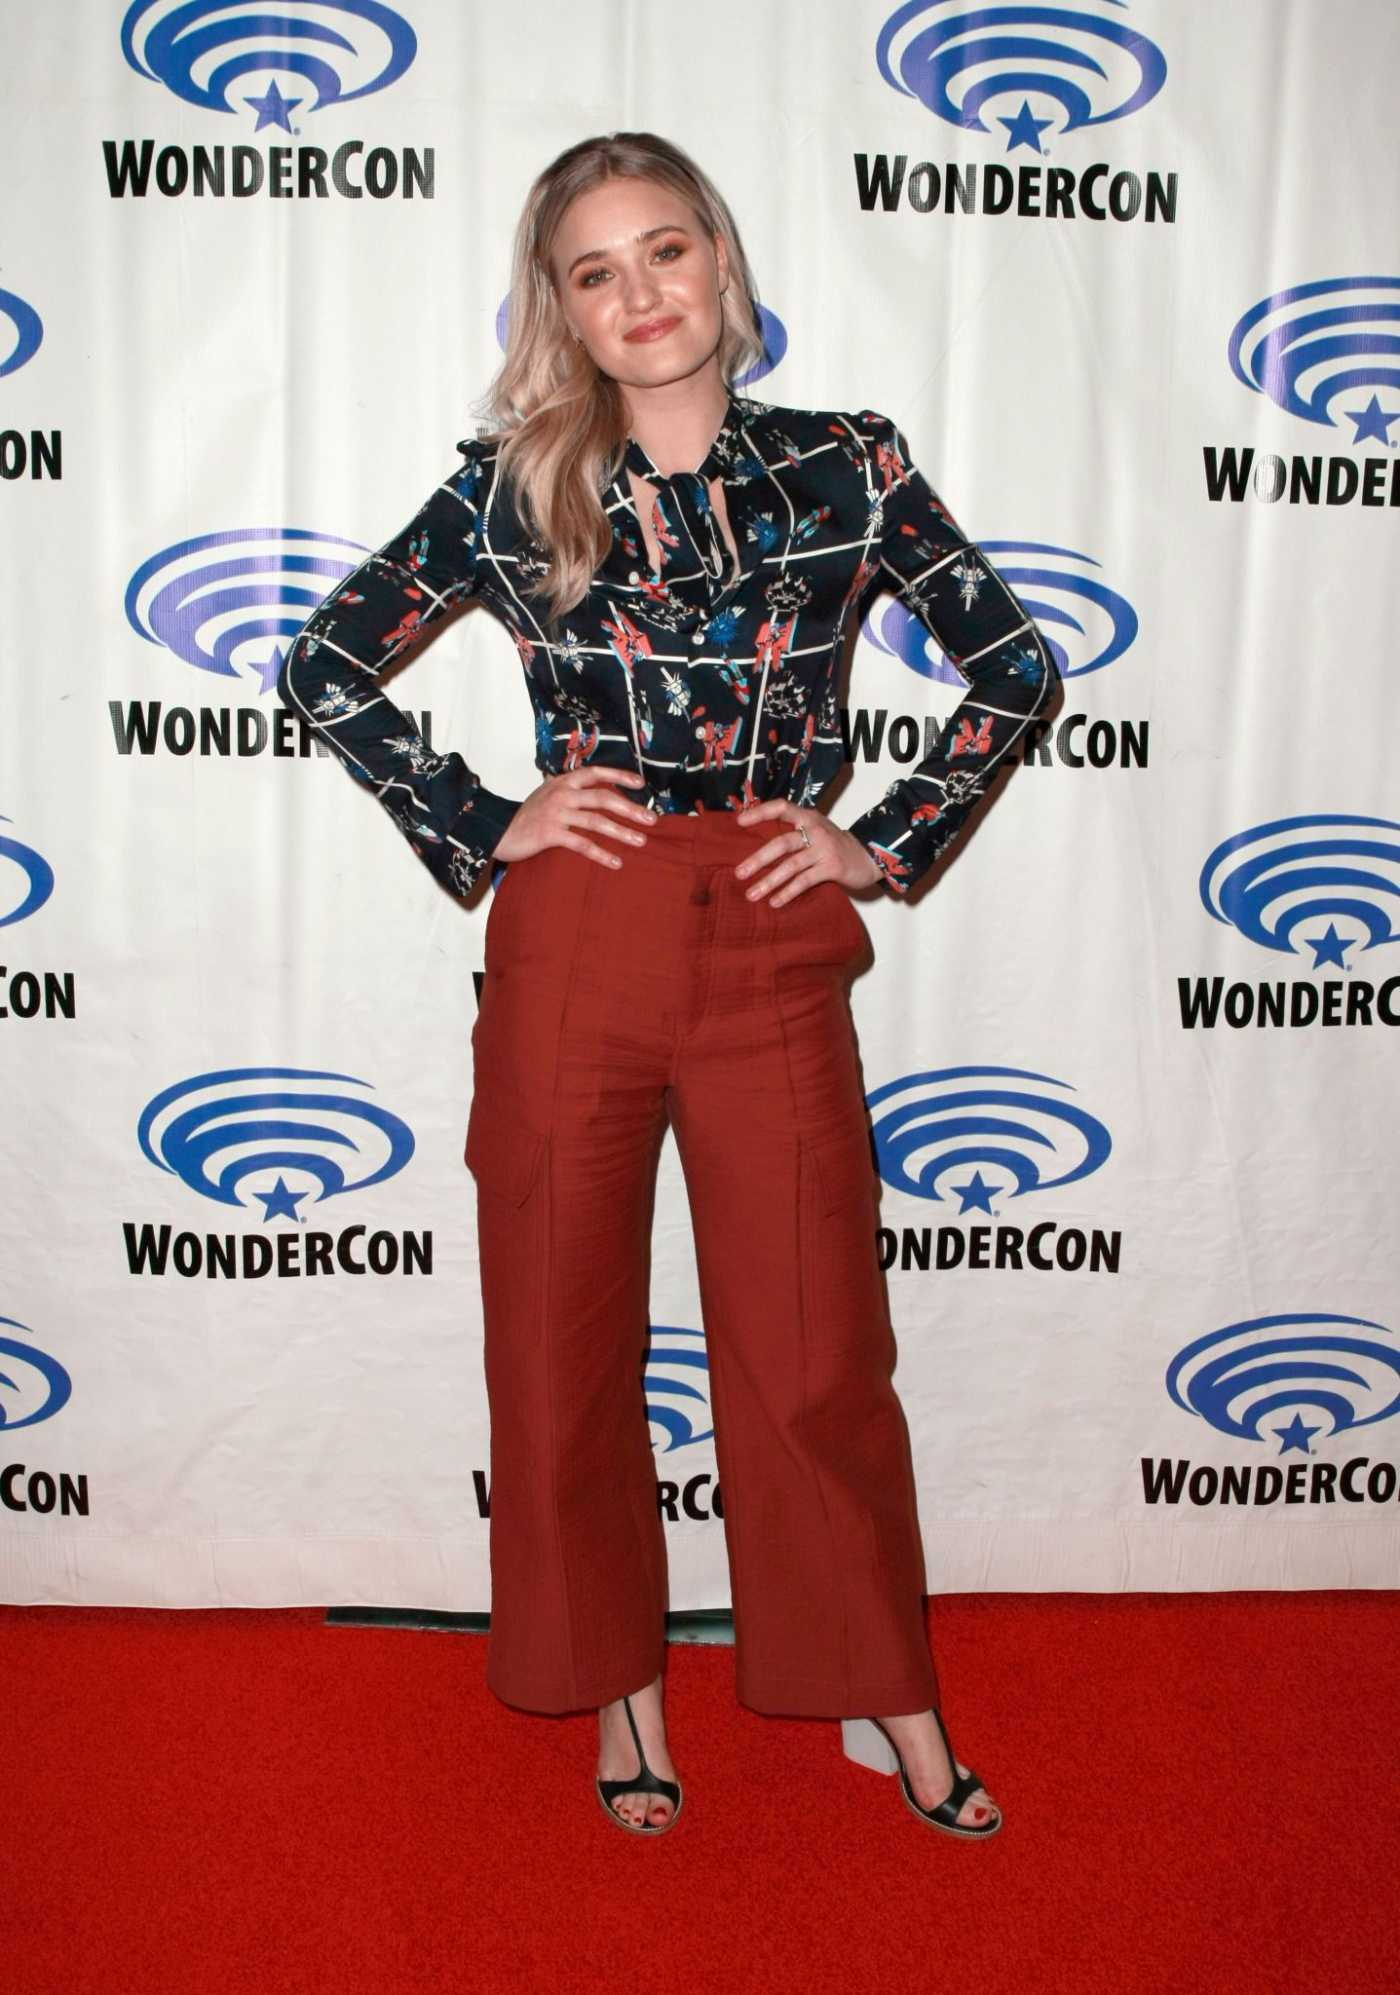 AJ Michalka Attends She-Ra and the Princesses of Power Press Line During 2019 WonderCon in Anaheim 03/30/2019